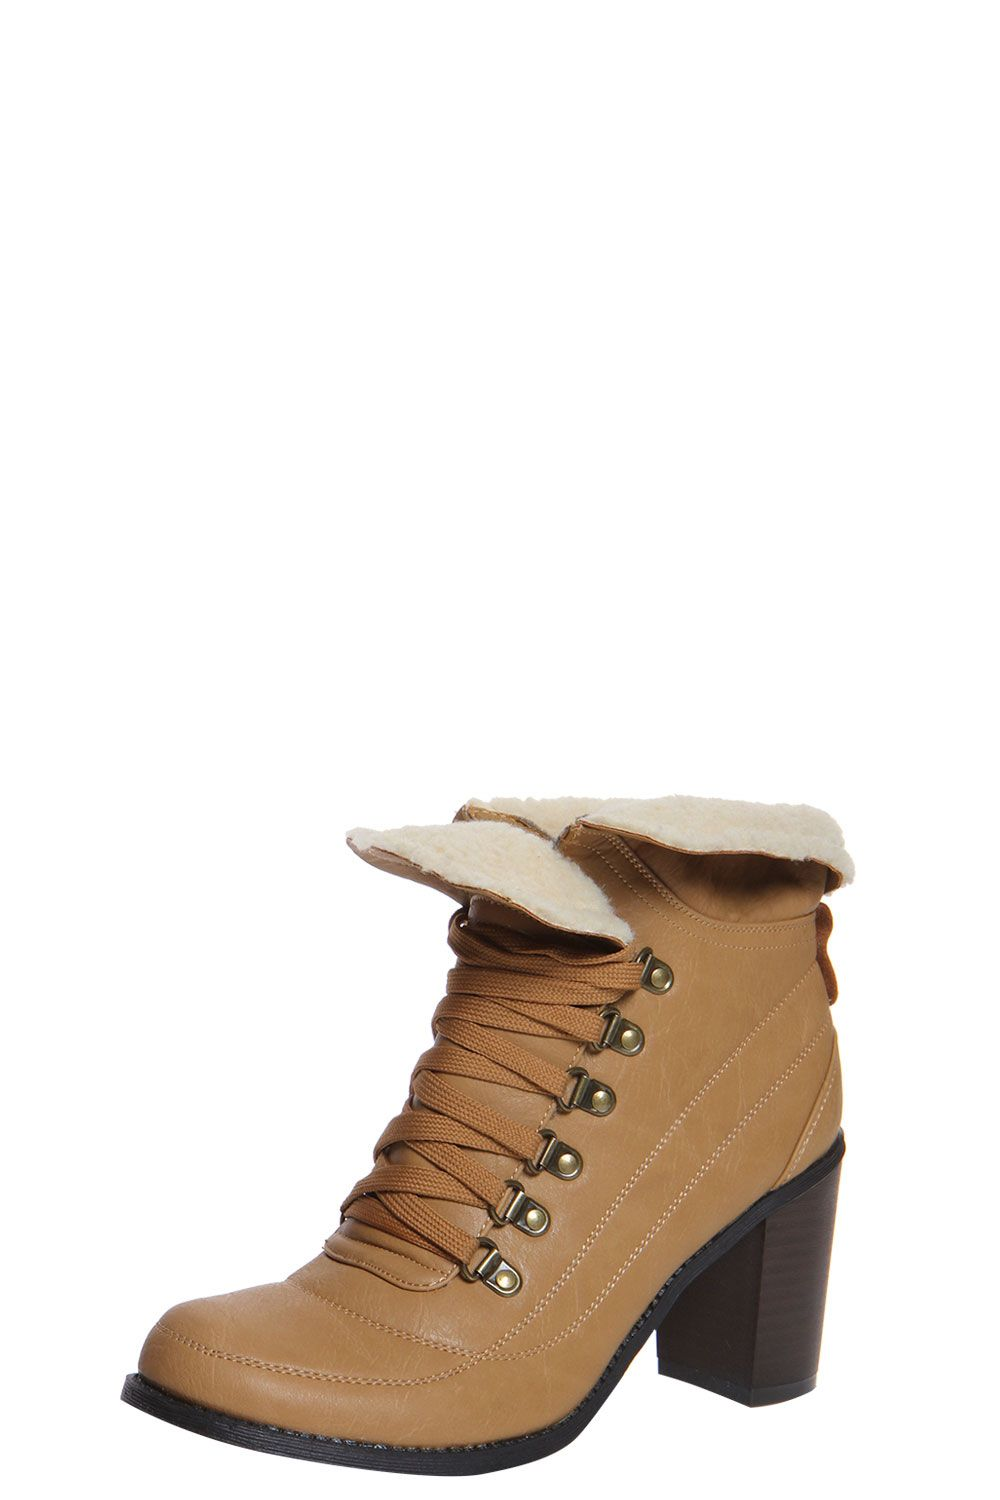 Lavinia Shearling Lined Block Heeled Ankle Boot